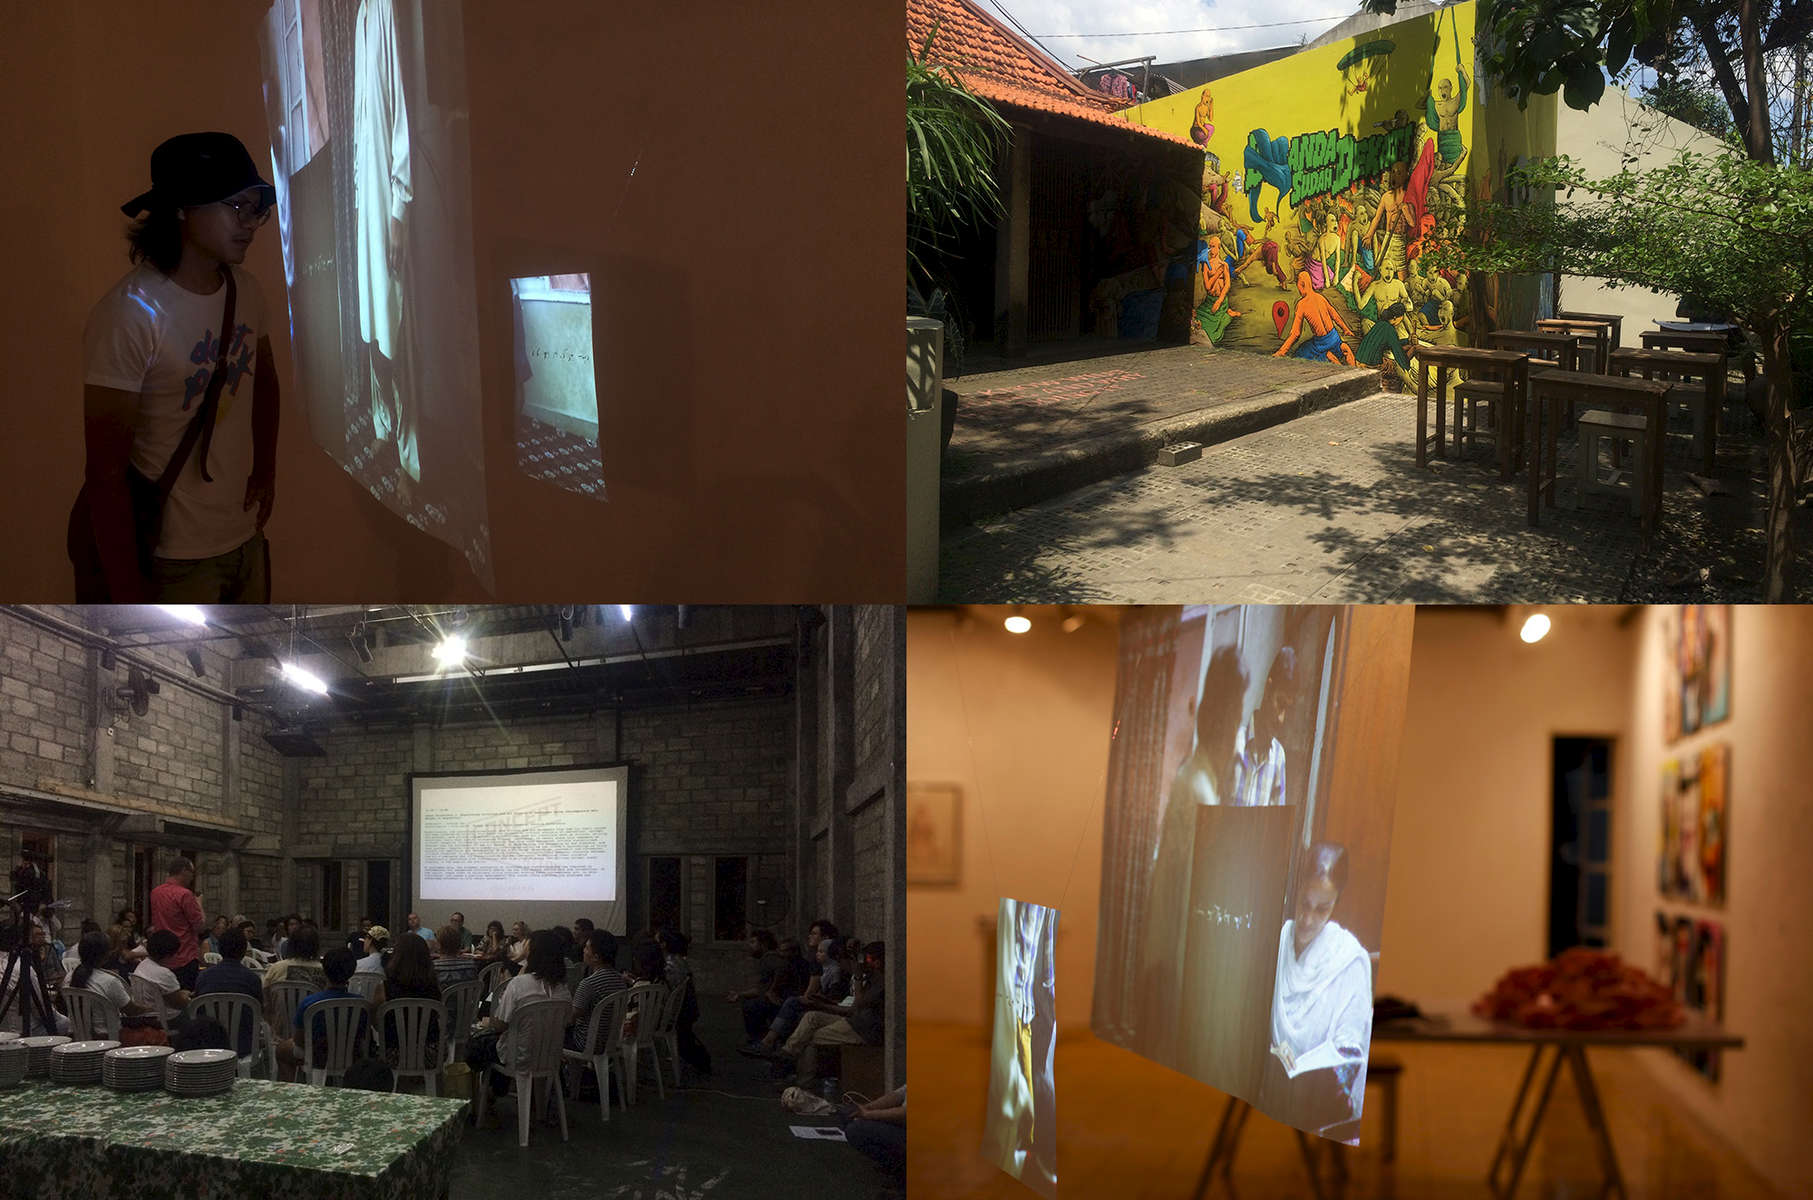 Two works, a hanging projection installation I was a different type of man back then (2015-2016), and multi-channel sound piece IntegrationII (2014), are in Cemeti at the exhibition Concept, Context, Contestation, organised by the Bangkok Art and Culture Centre, and presented at Cemeti Art Space and Ruang Mes 56.